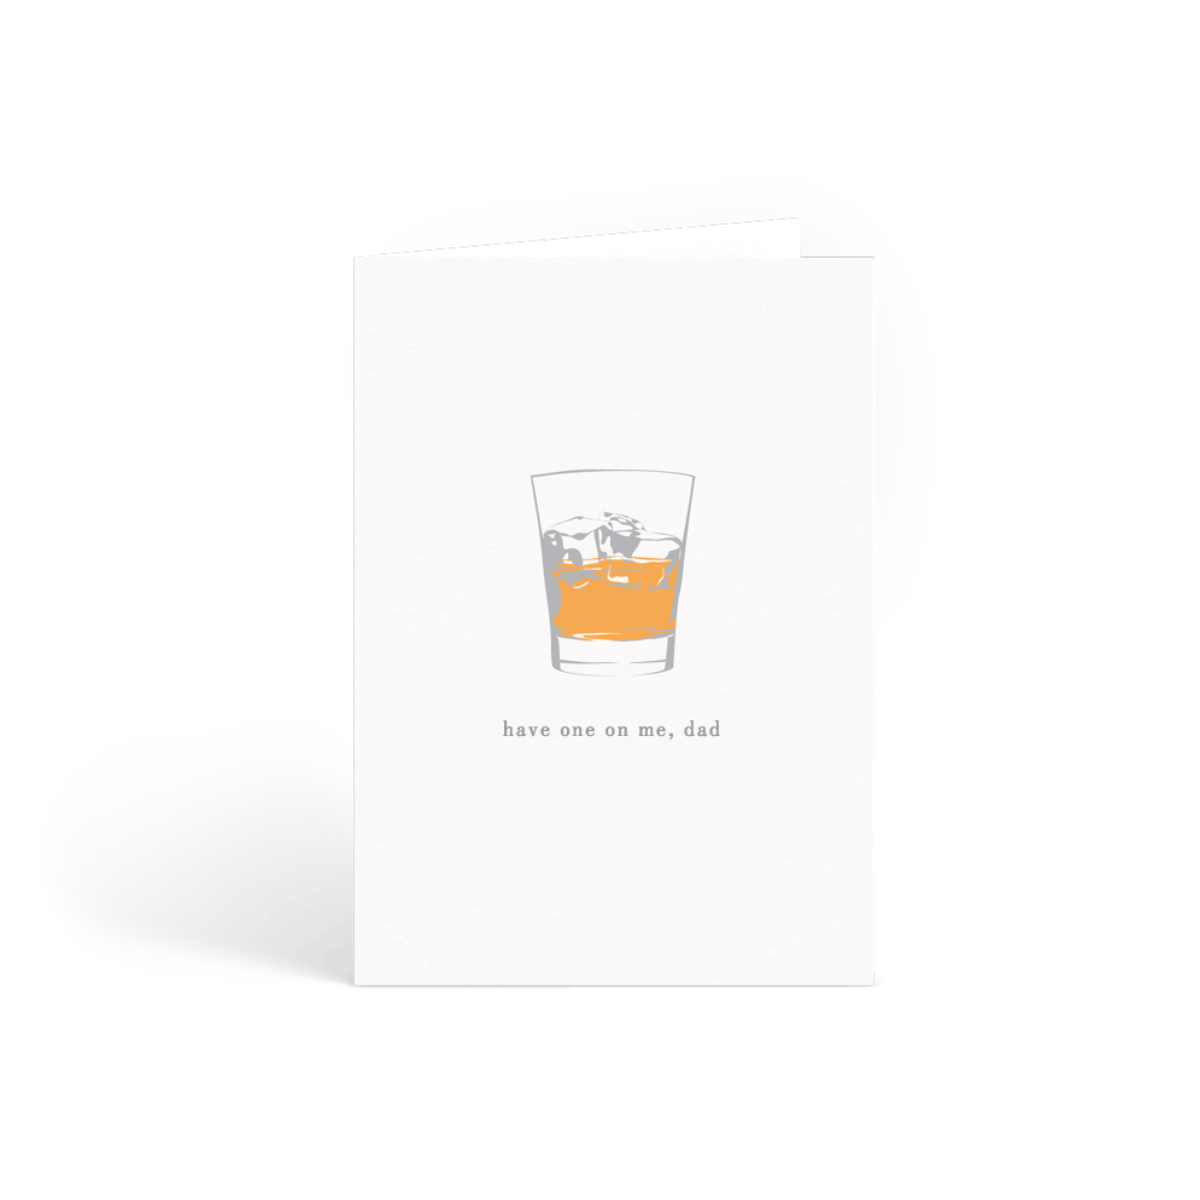 Https%3a%2f%2fwww.papier.com%2fproduct image%2f8366%2f2%2fglass of whiskey 2076 front 1542384456.png?ixlib=rb 1.1